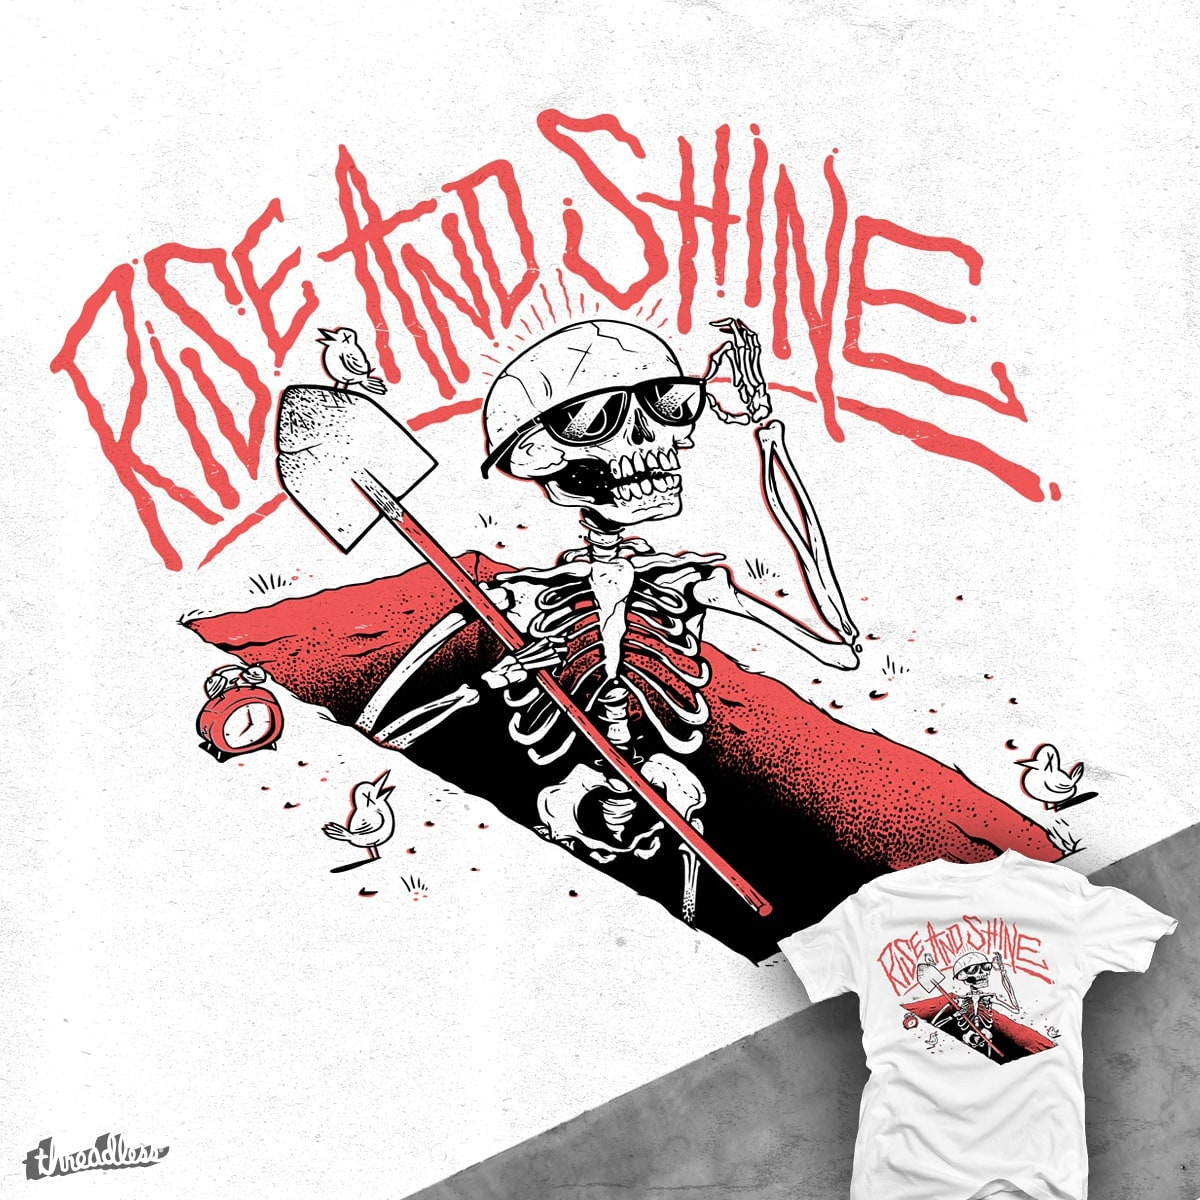 Good Mourning  by citizen rifferson on Threadless